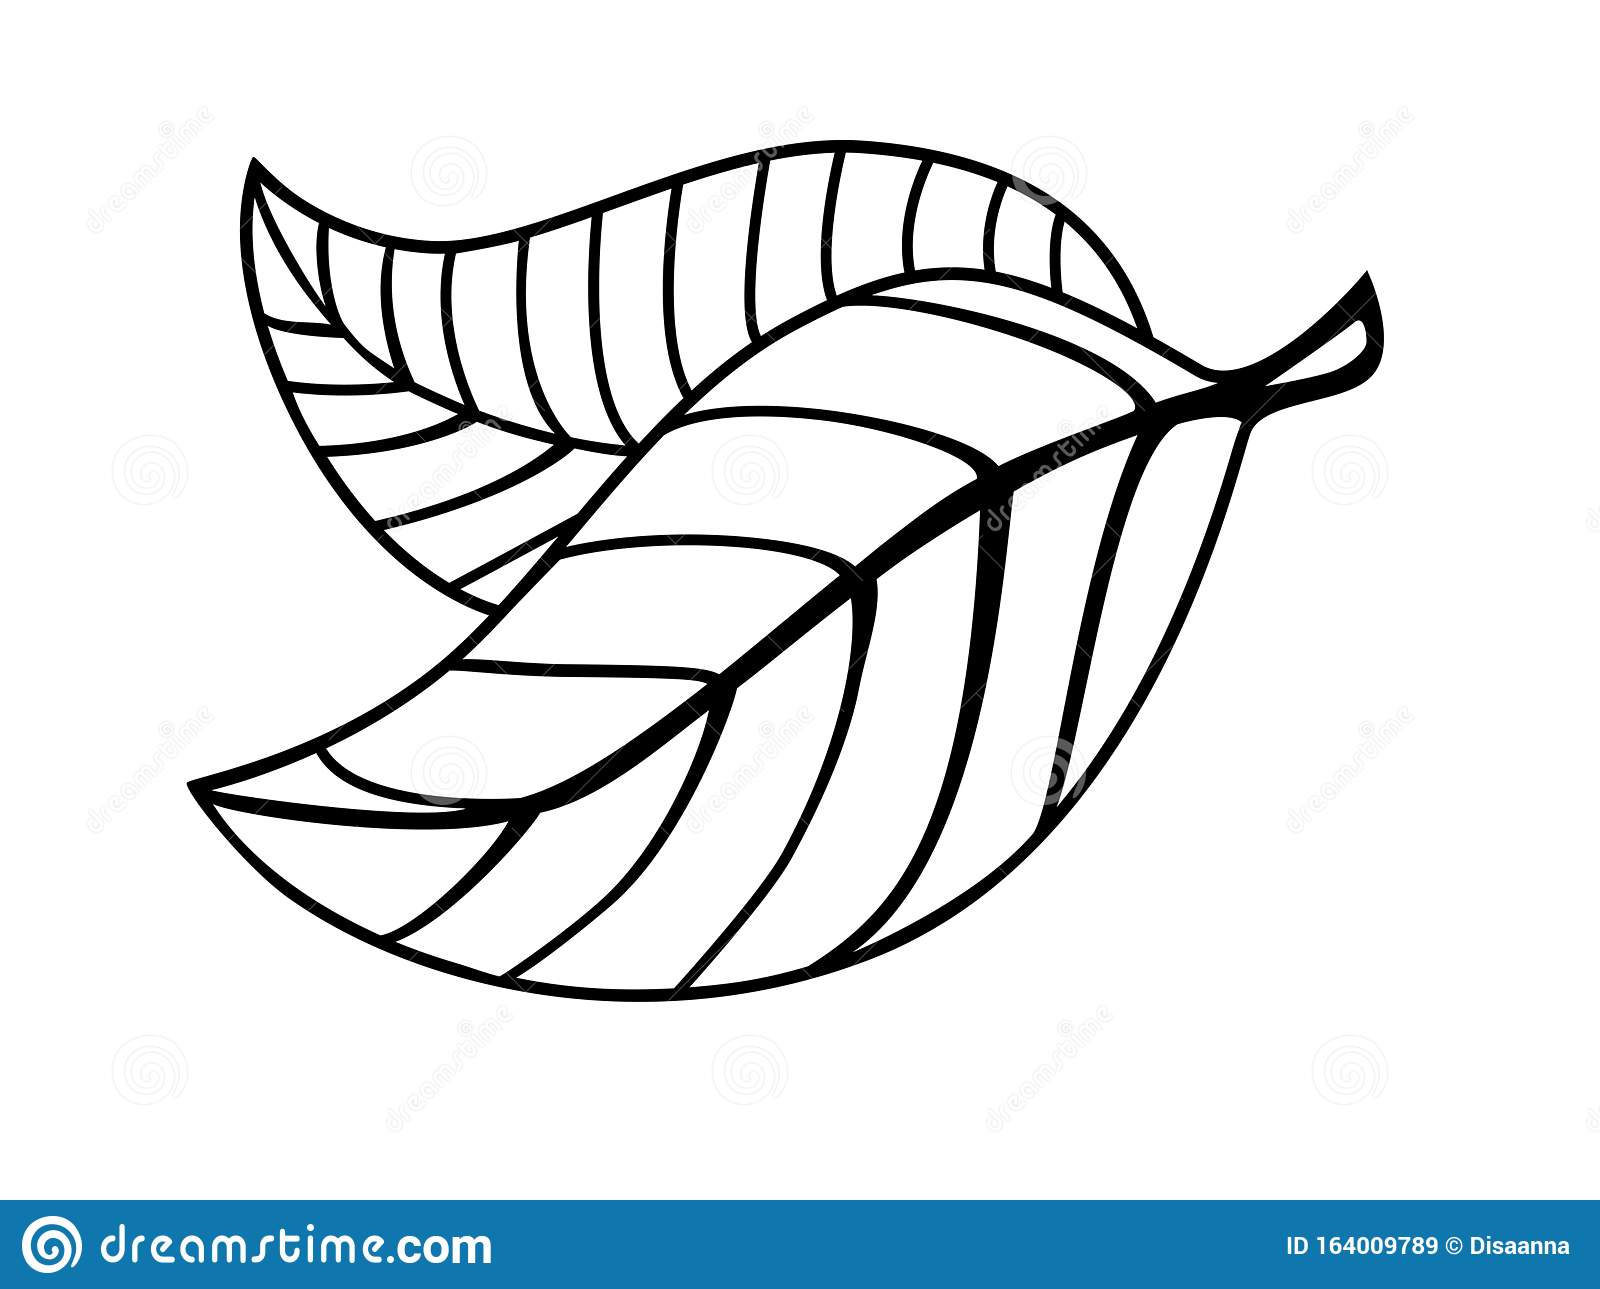 Graceful Beautiful Leaves Coloring Two Leaves With Veinlet And Petiole Linear Vector Leaves Element For Coloring Outline Stock Vector Illustration Of Botany Natural 164009789